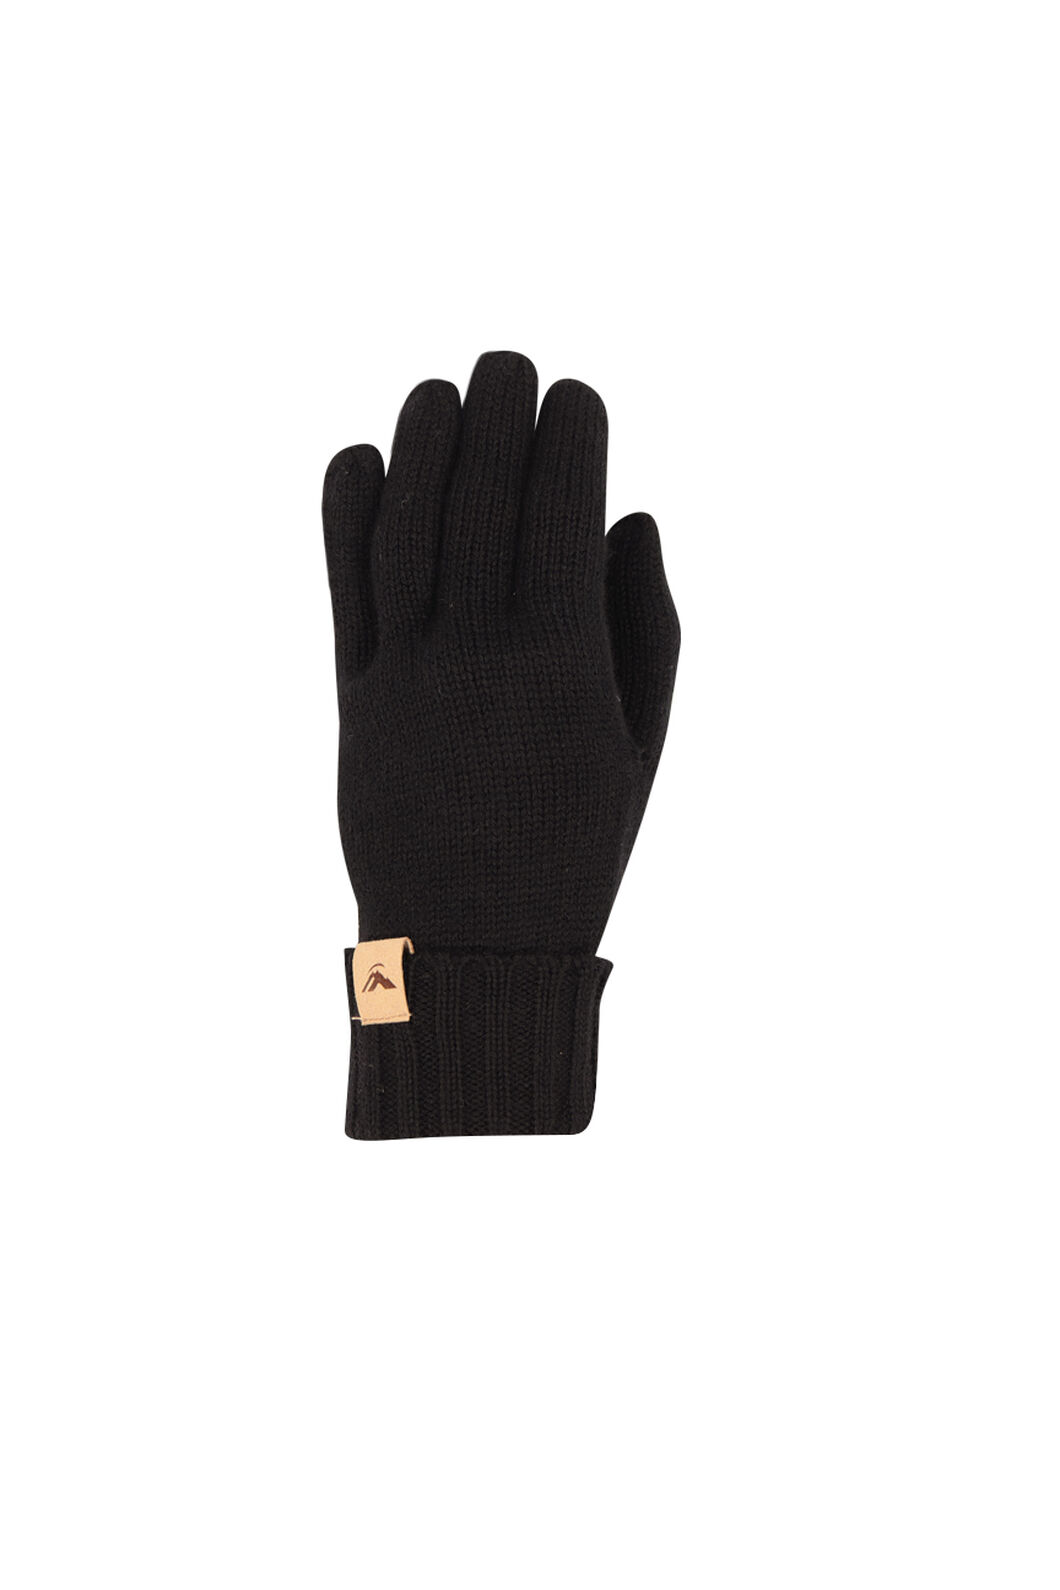 Macpac Merino Knit Gloves V2, Black, hi-res